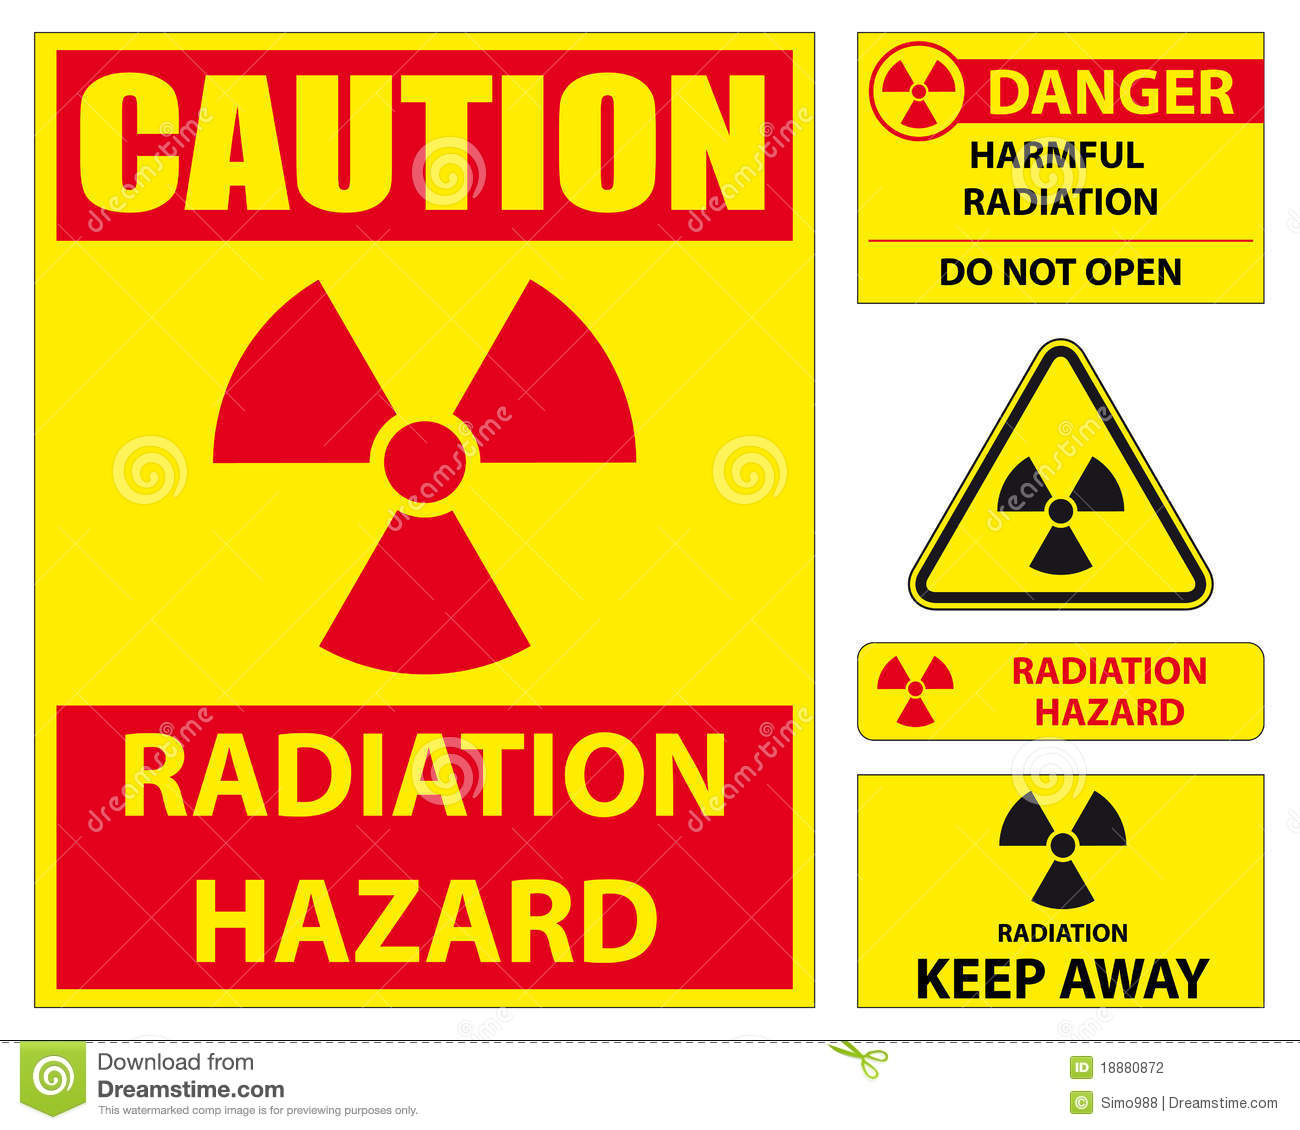 Radiation Hazard Sign Set Stock Photography - Image: 18880872